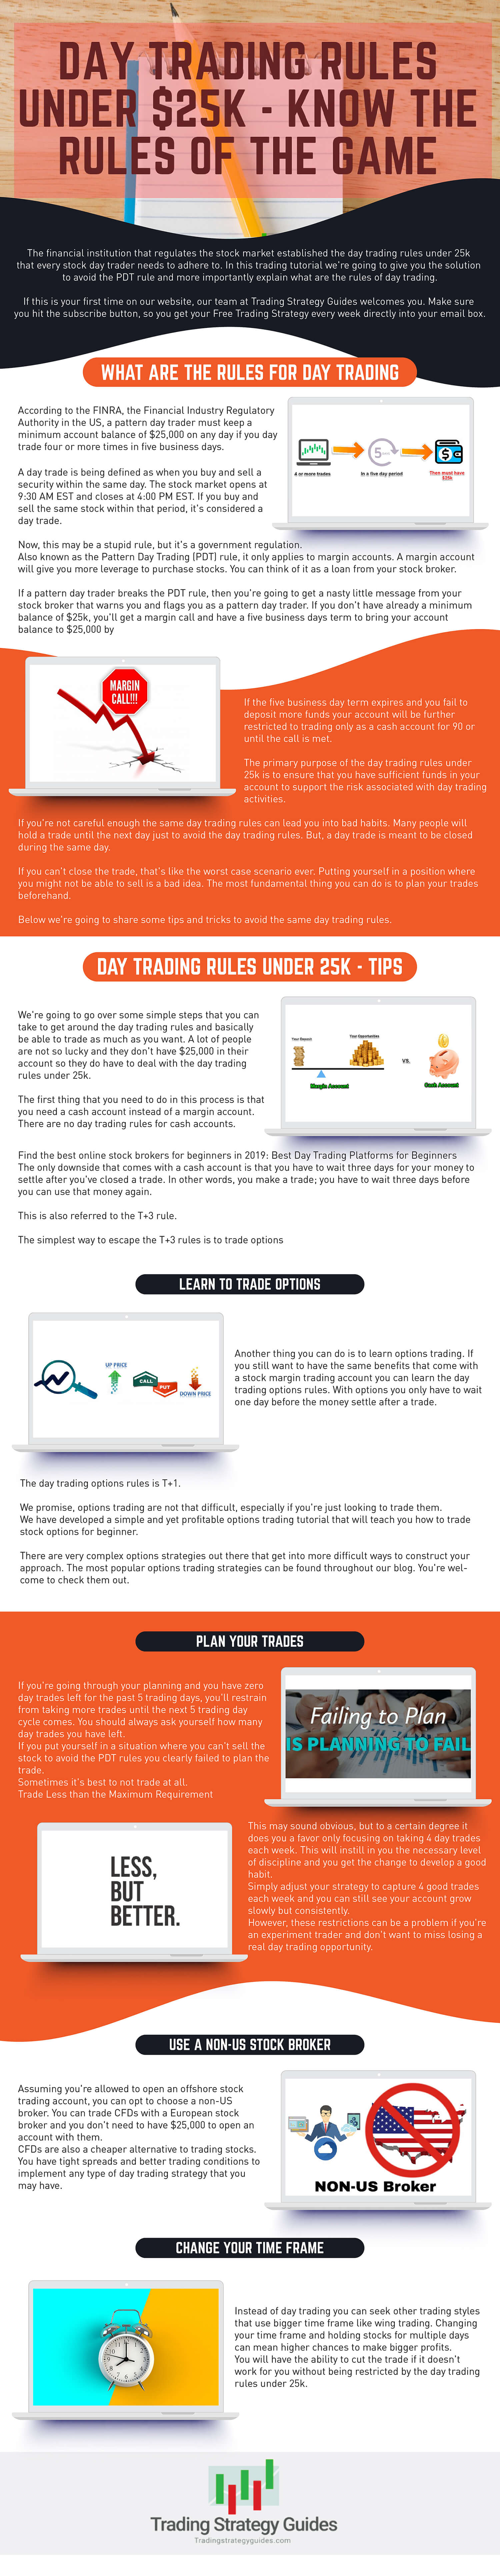 day trading under 25k rules pdf